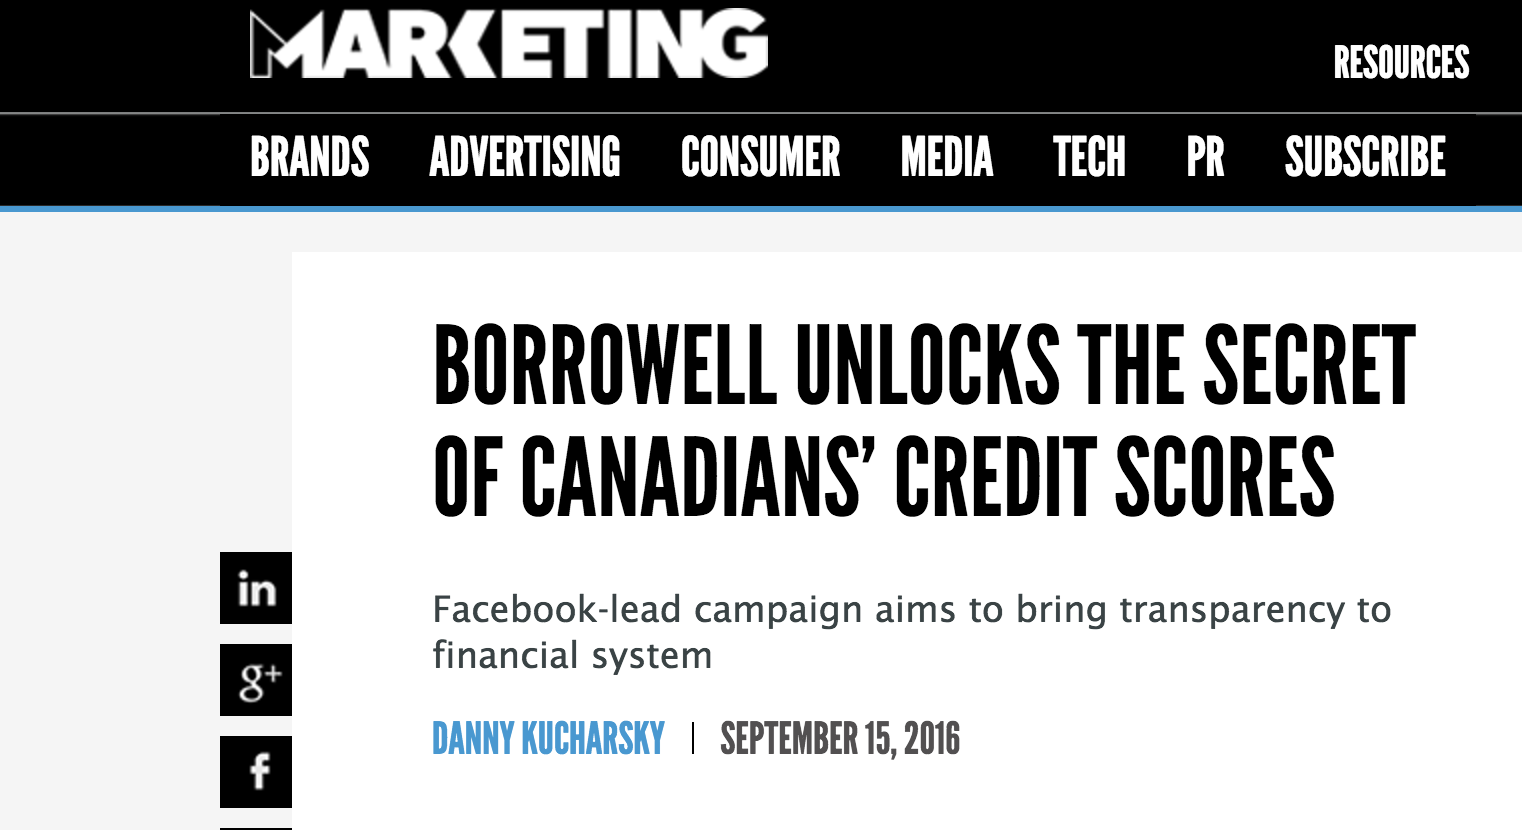 Borrowell Makes Marketing Mag!